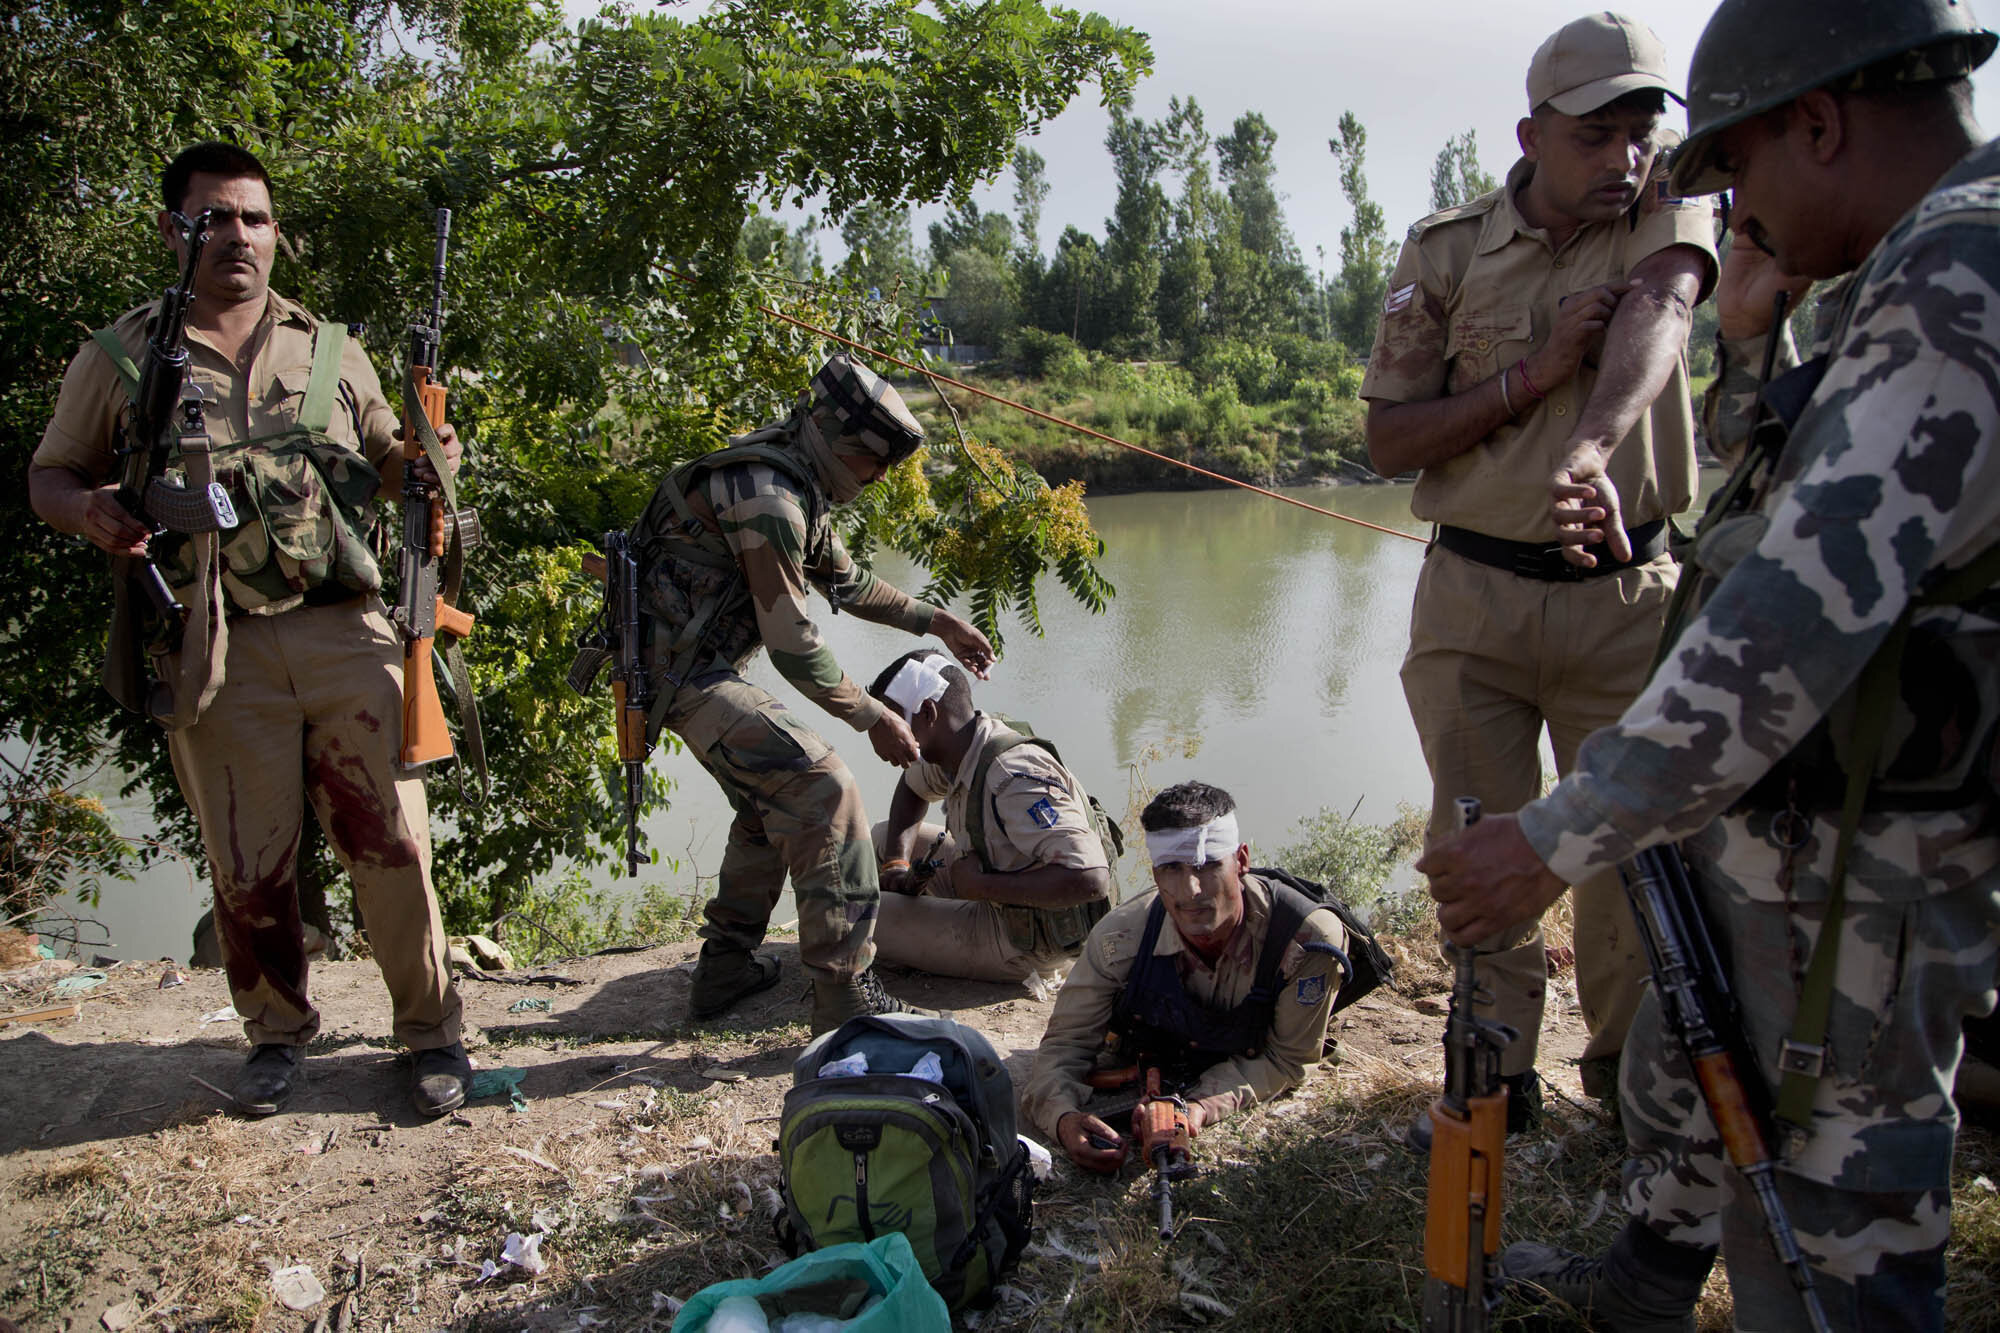 An Indian army soldier, second left, gives first aid to paramilitary soldiers who were injured in a highway ambush in Pampore, on the outskirts of Srinagar, Indian controlled Kashmir, June 25, 2016. (AP Photo/Dar Yasin)